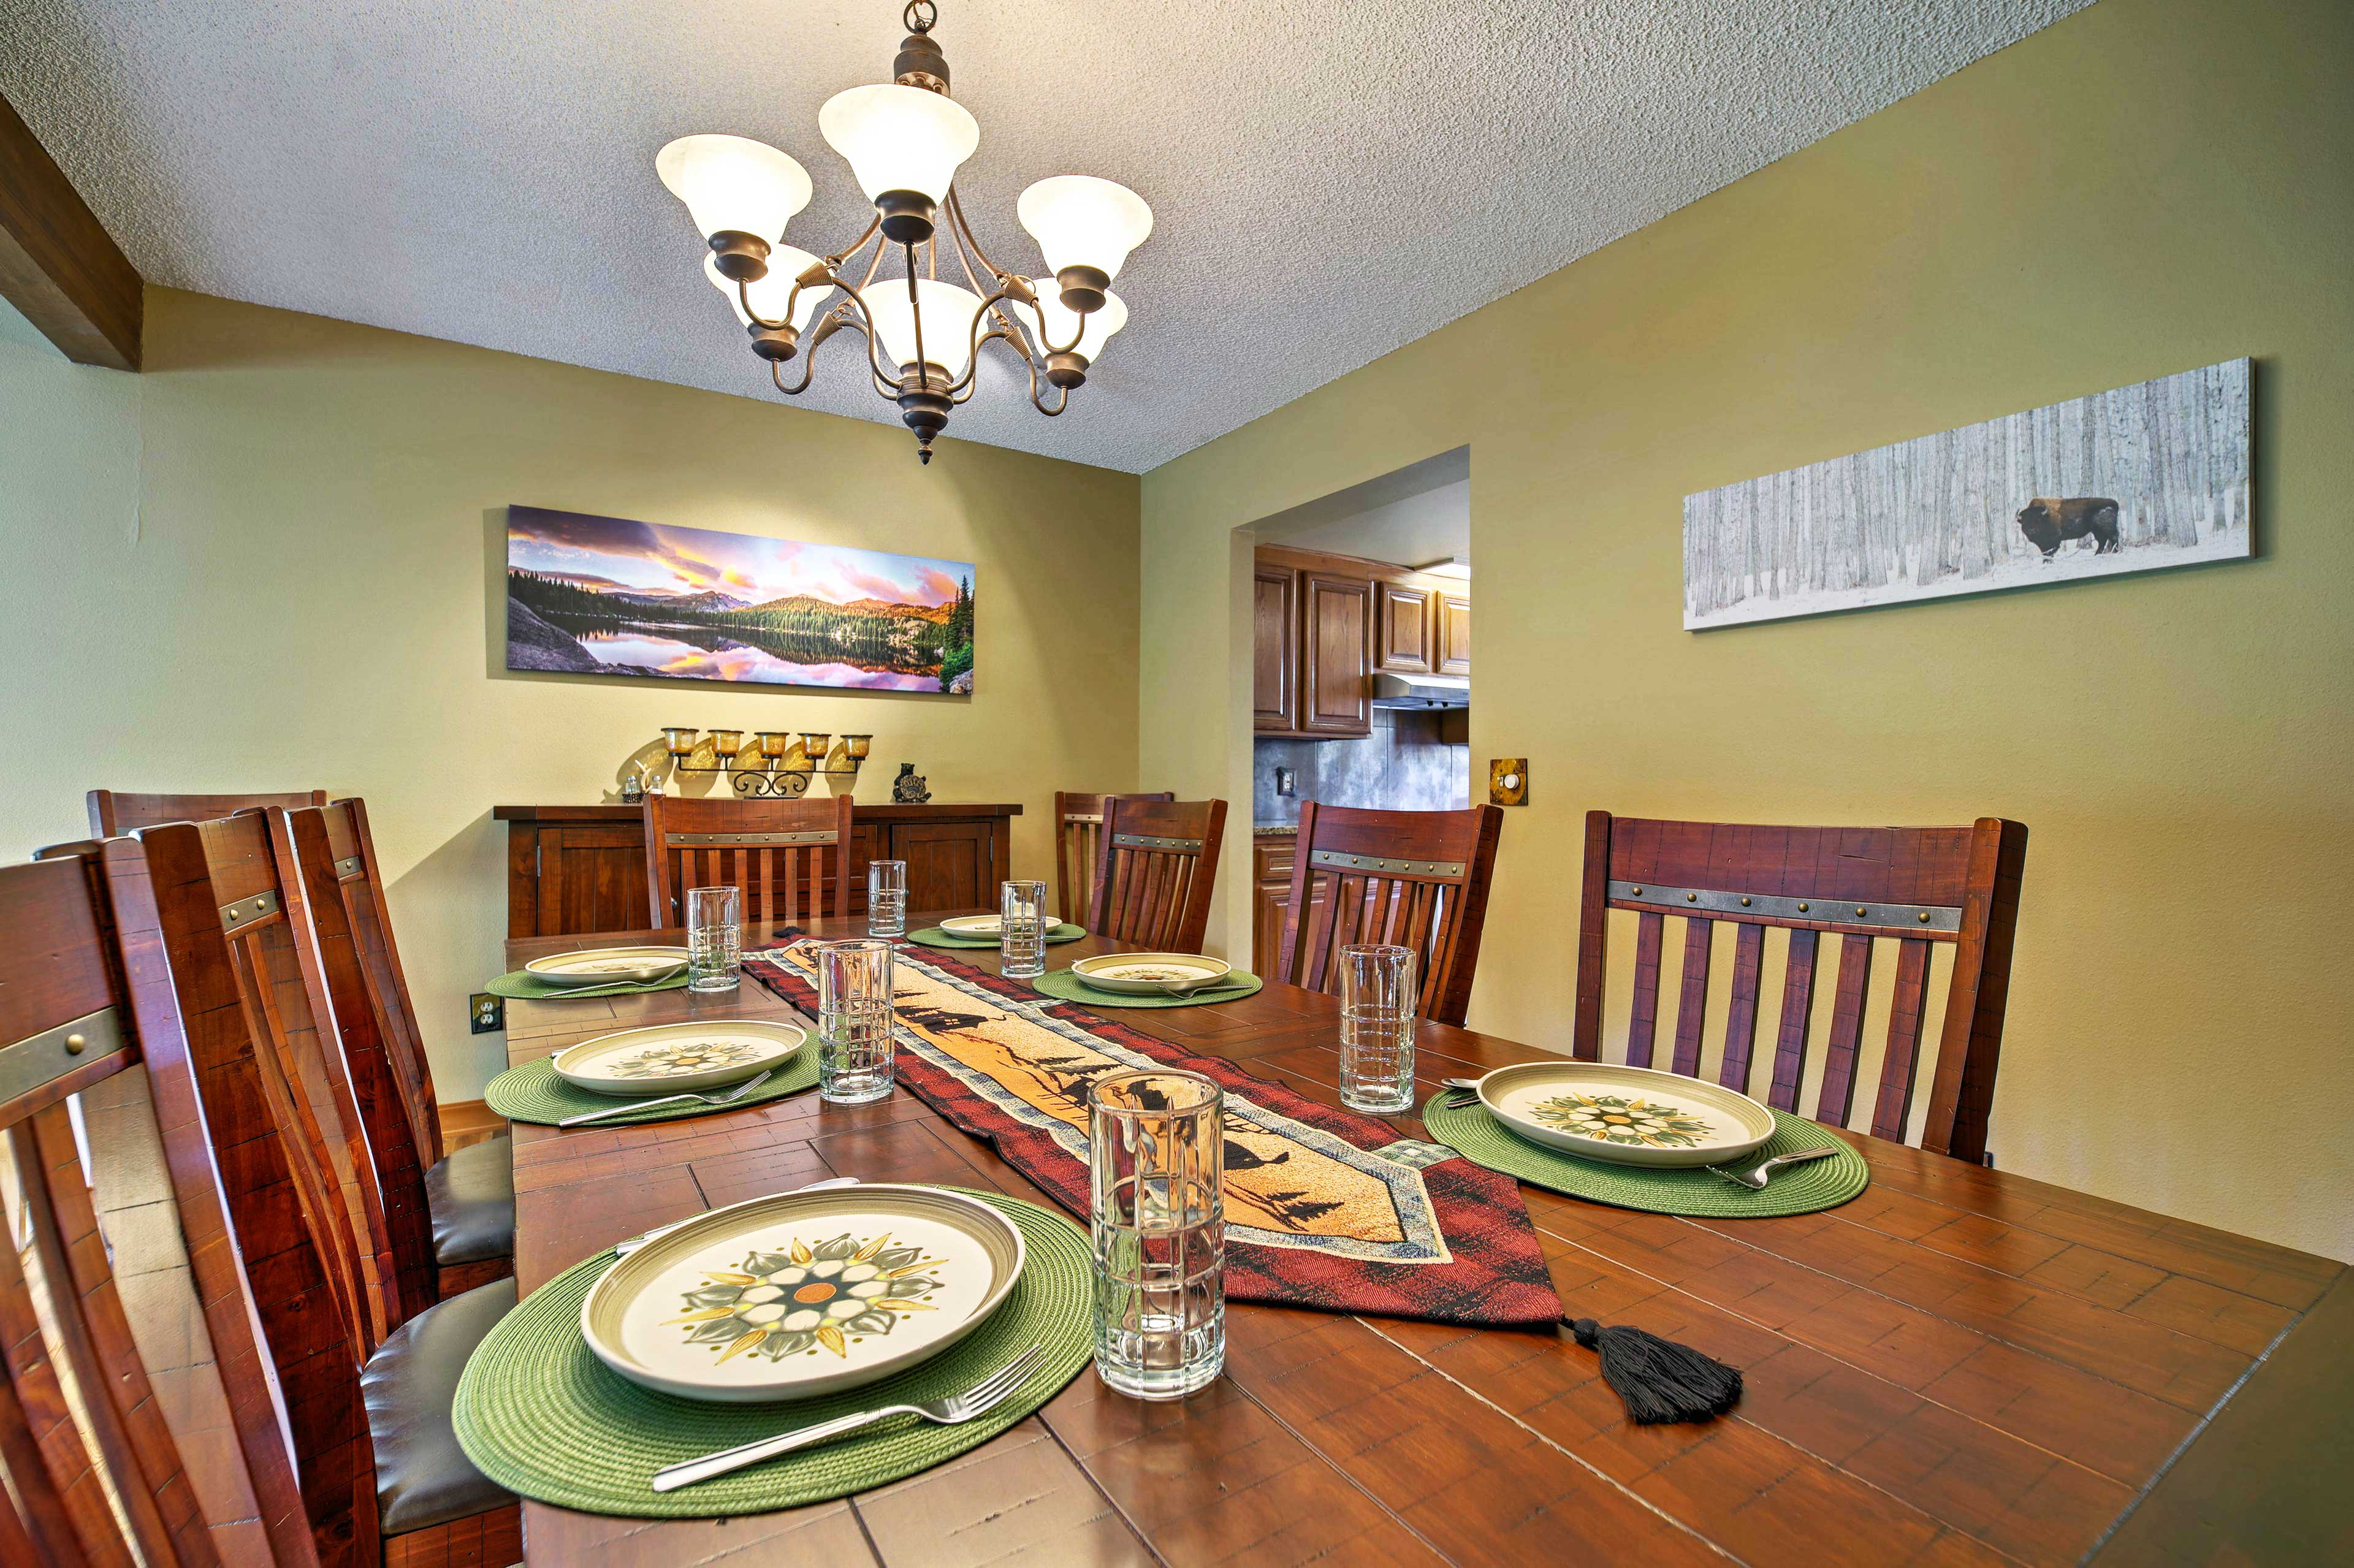 This area is perfect for board games and quality time with your crew!